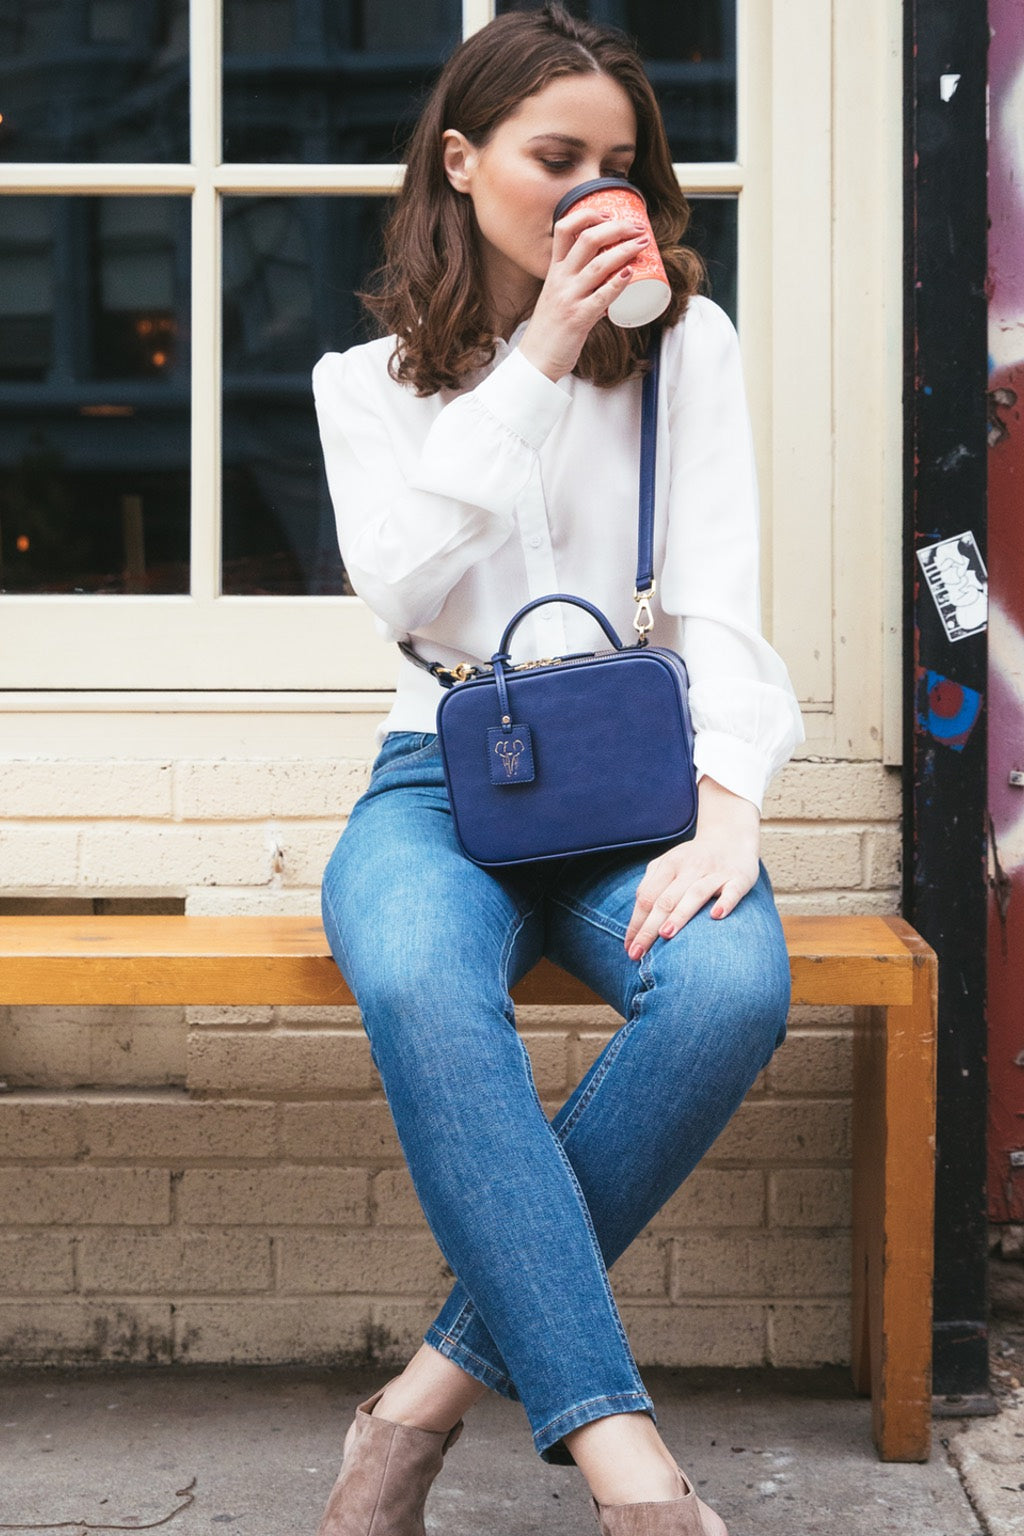 Model wearing FERRON crossbody vegan handbag and drinking coffee